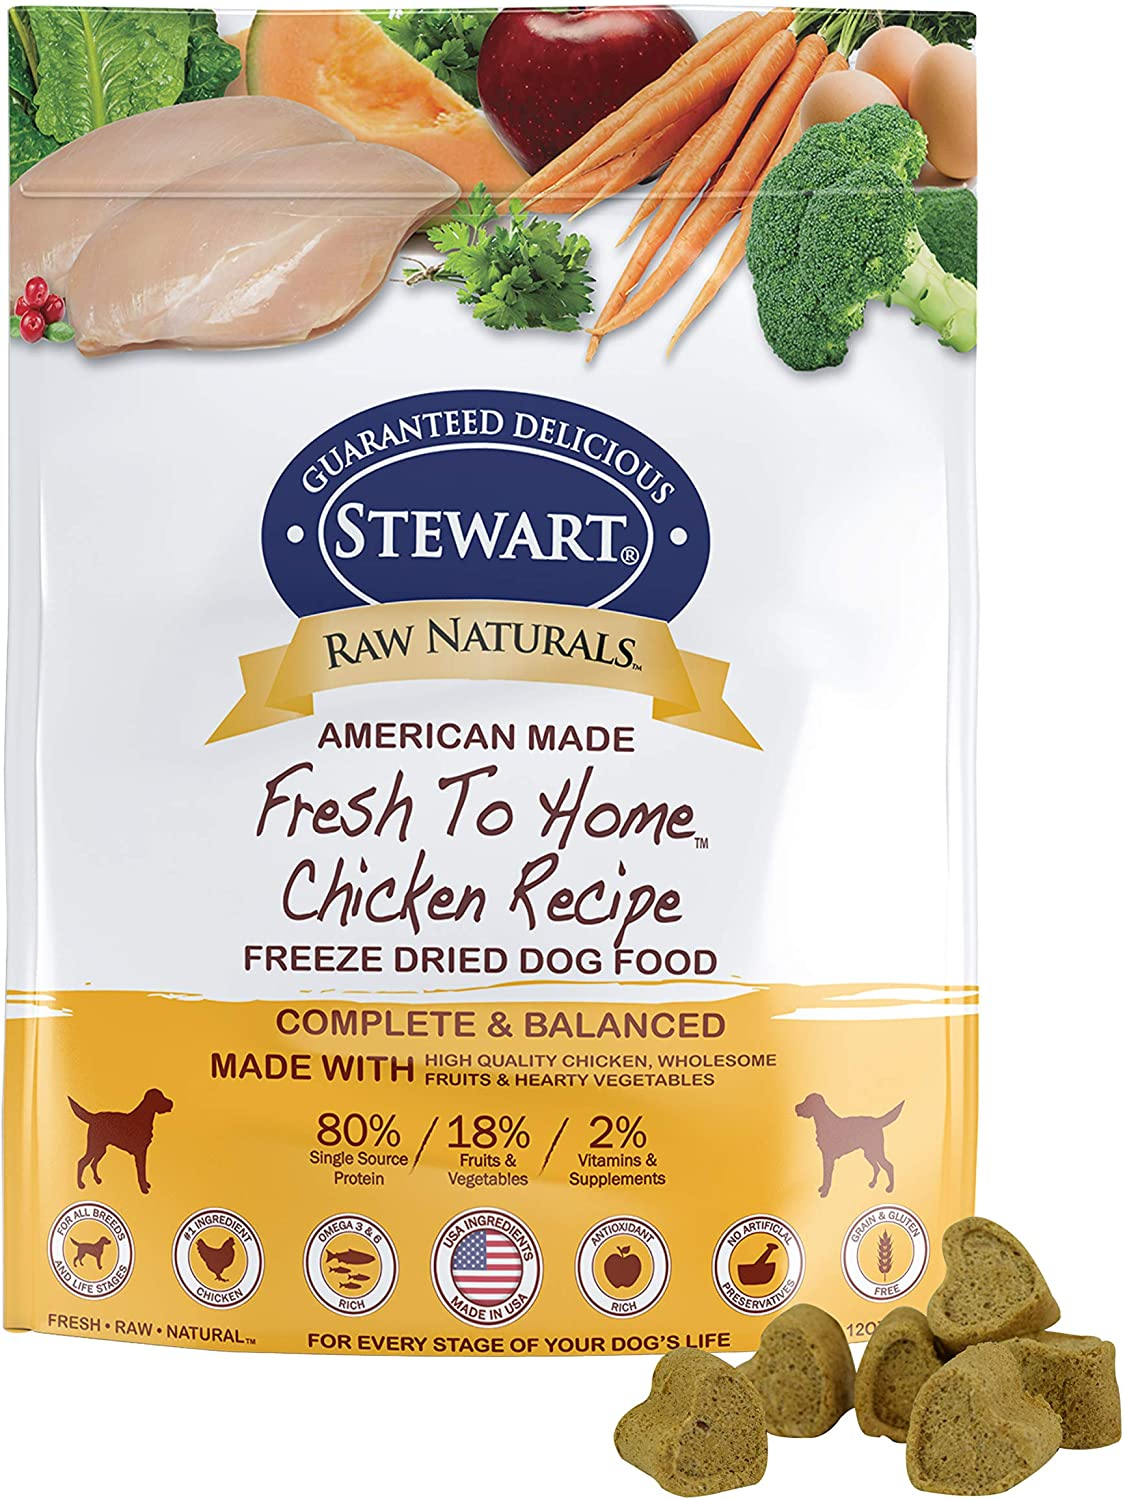 Raw Naturals by Stewart Freeze Dried Dog Food in Resealable Pouch, 12-Ounce, Chicken